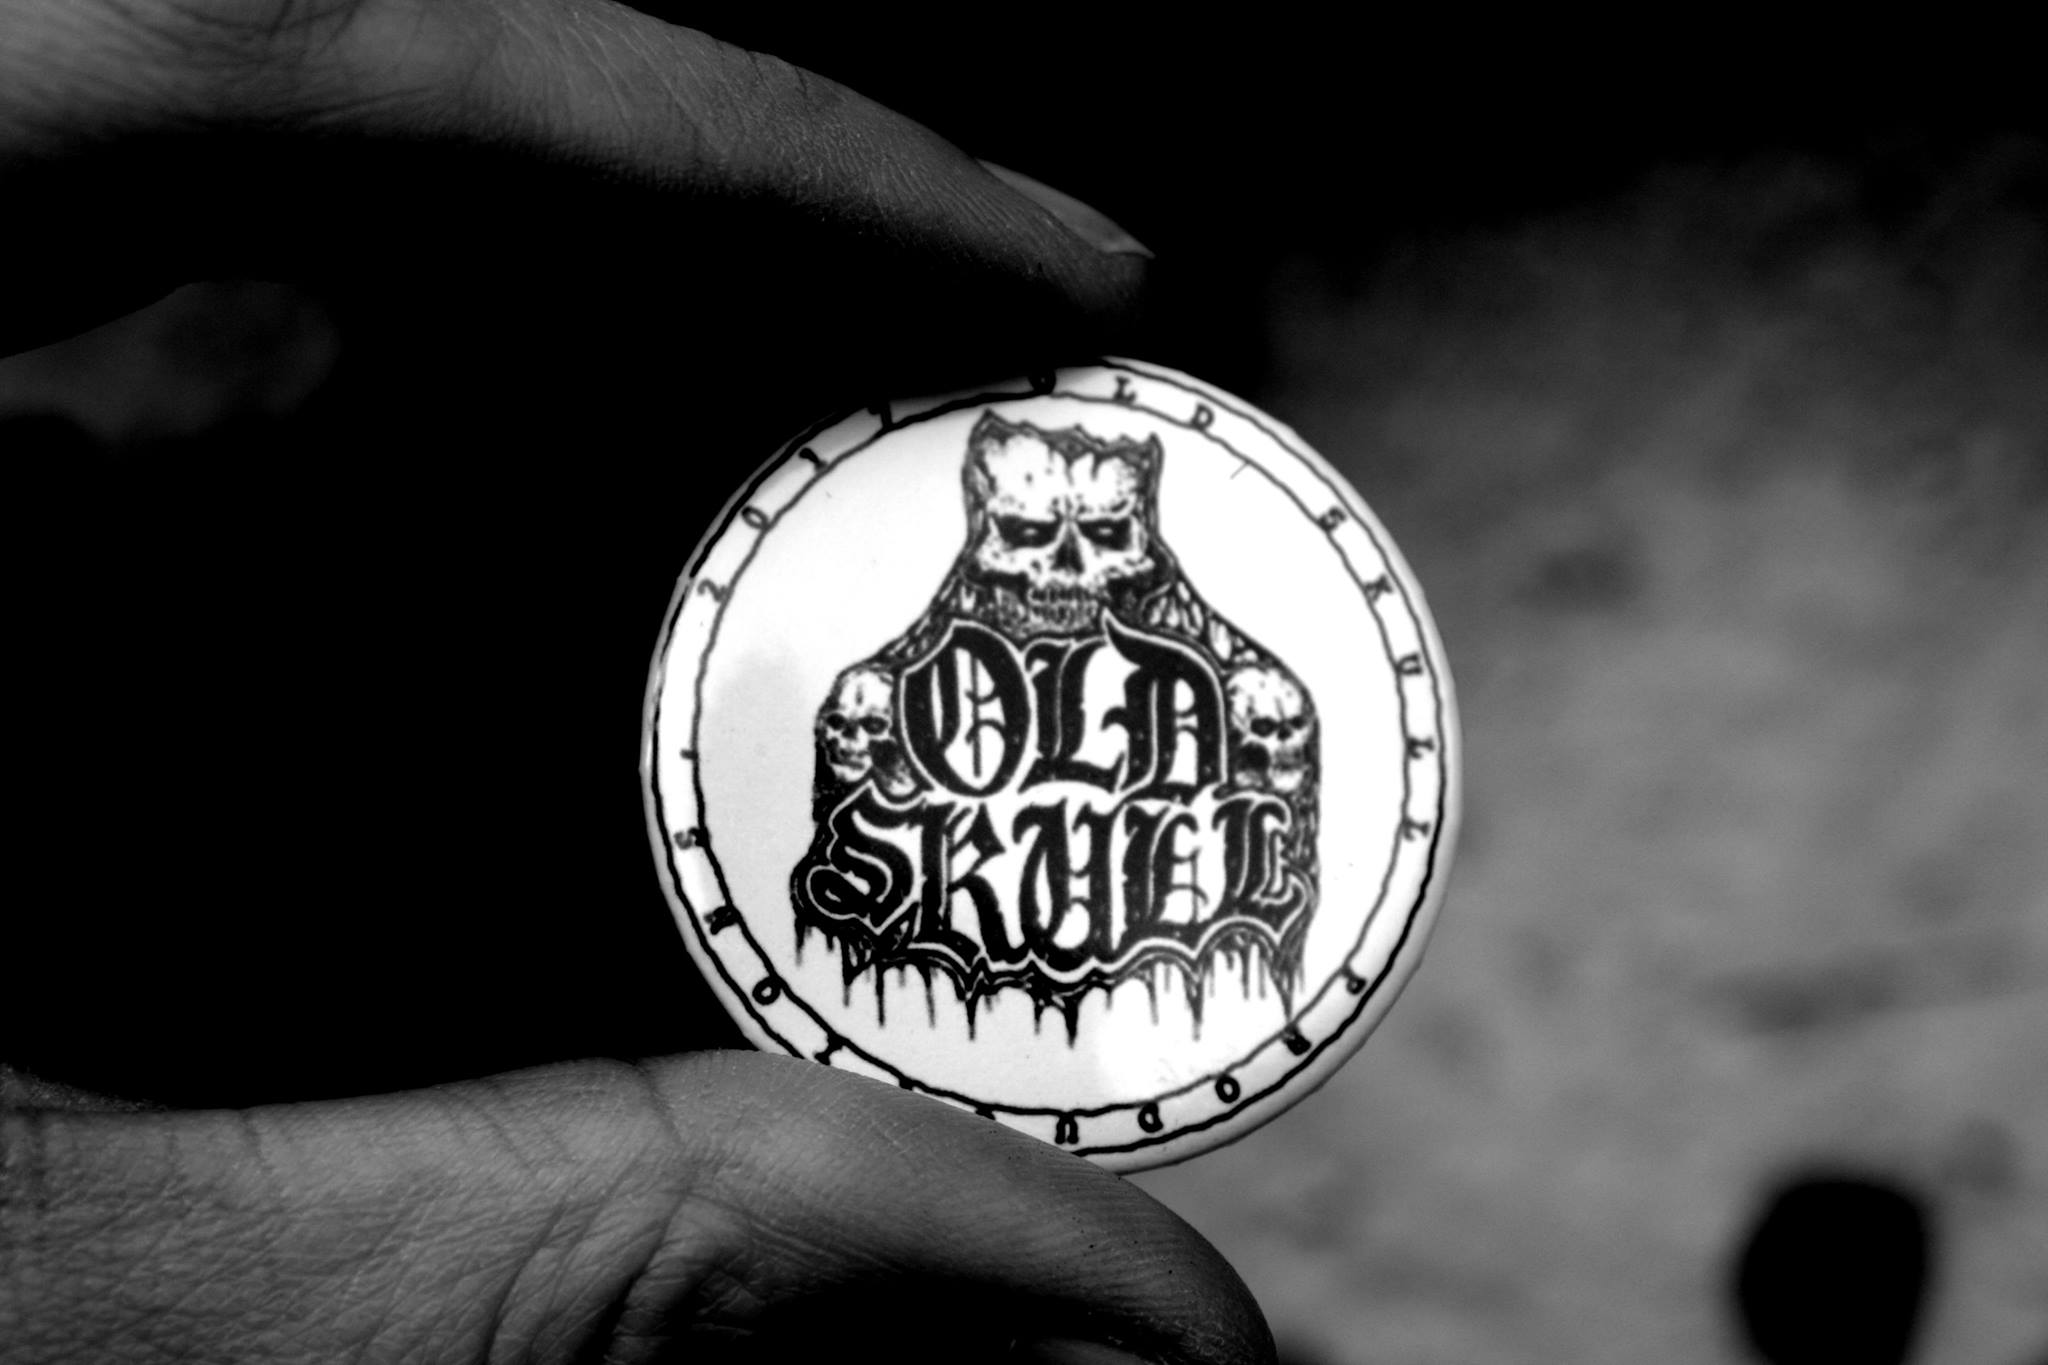 Old Skull Productions